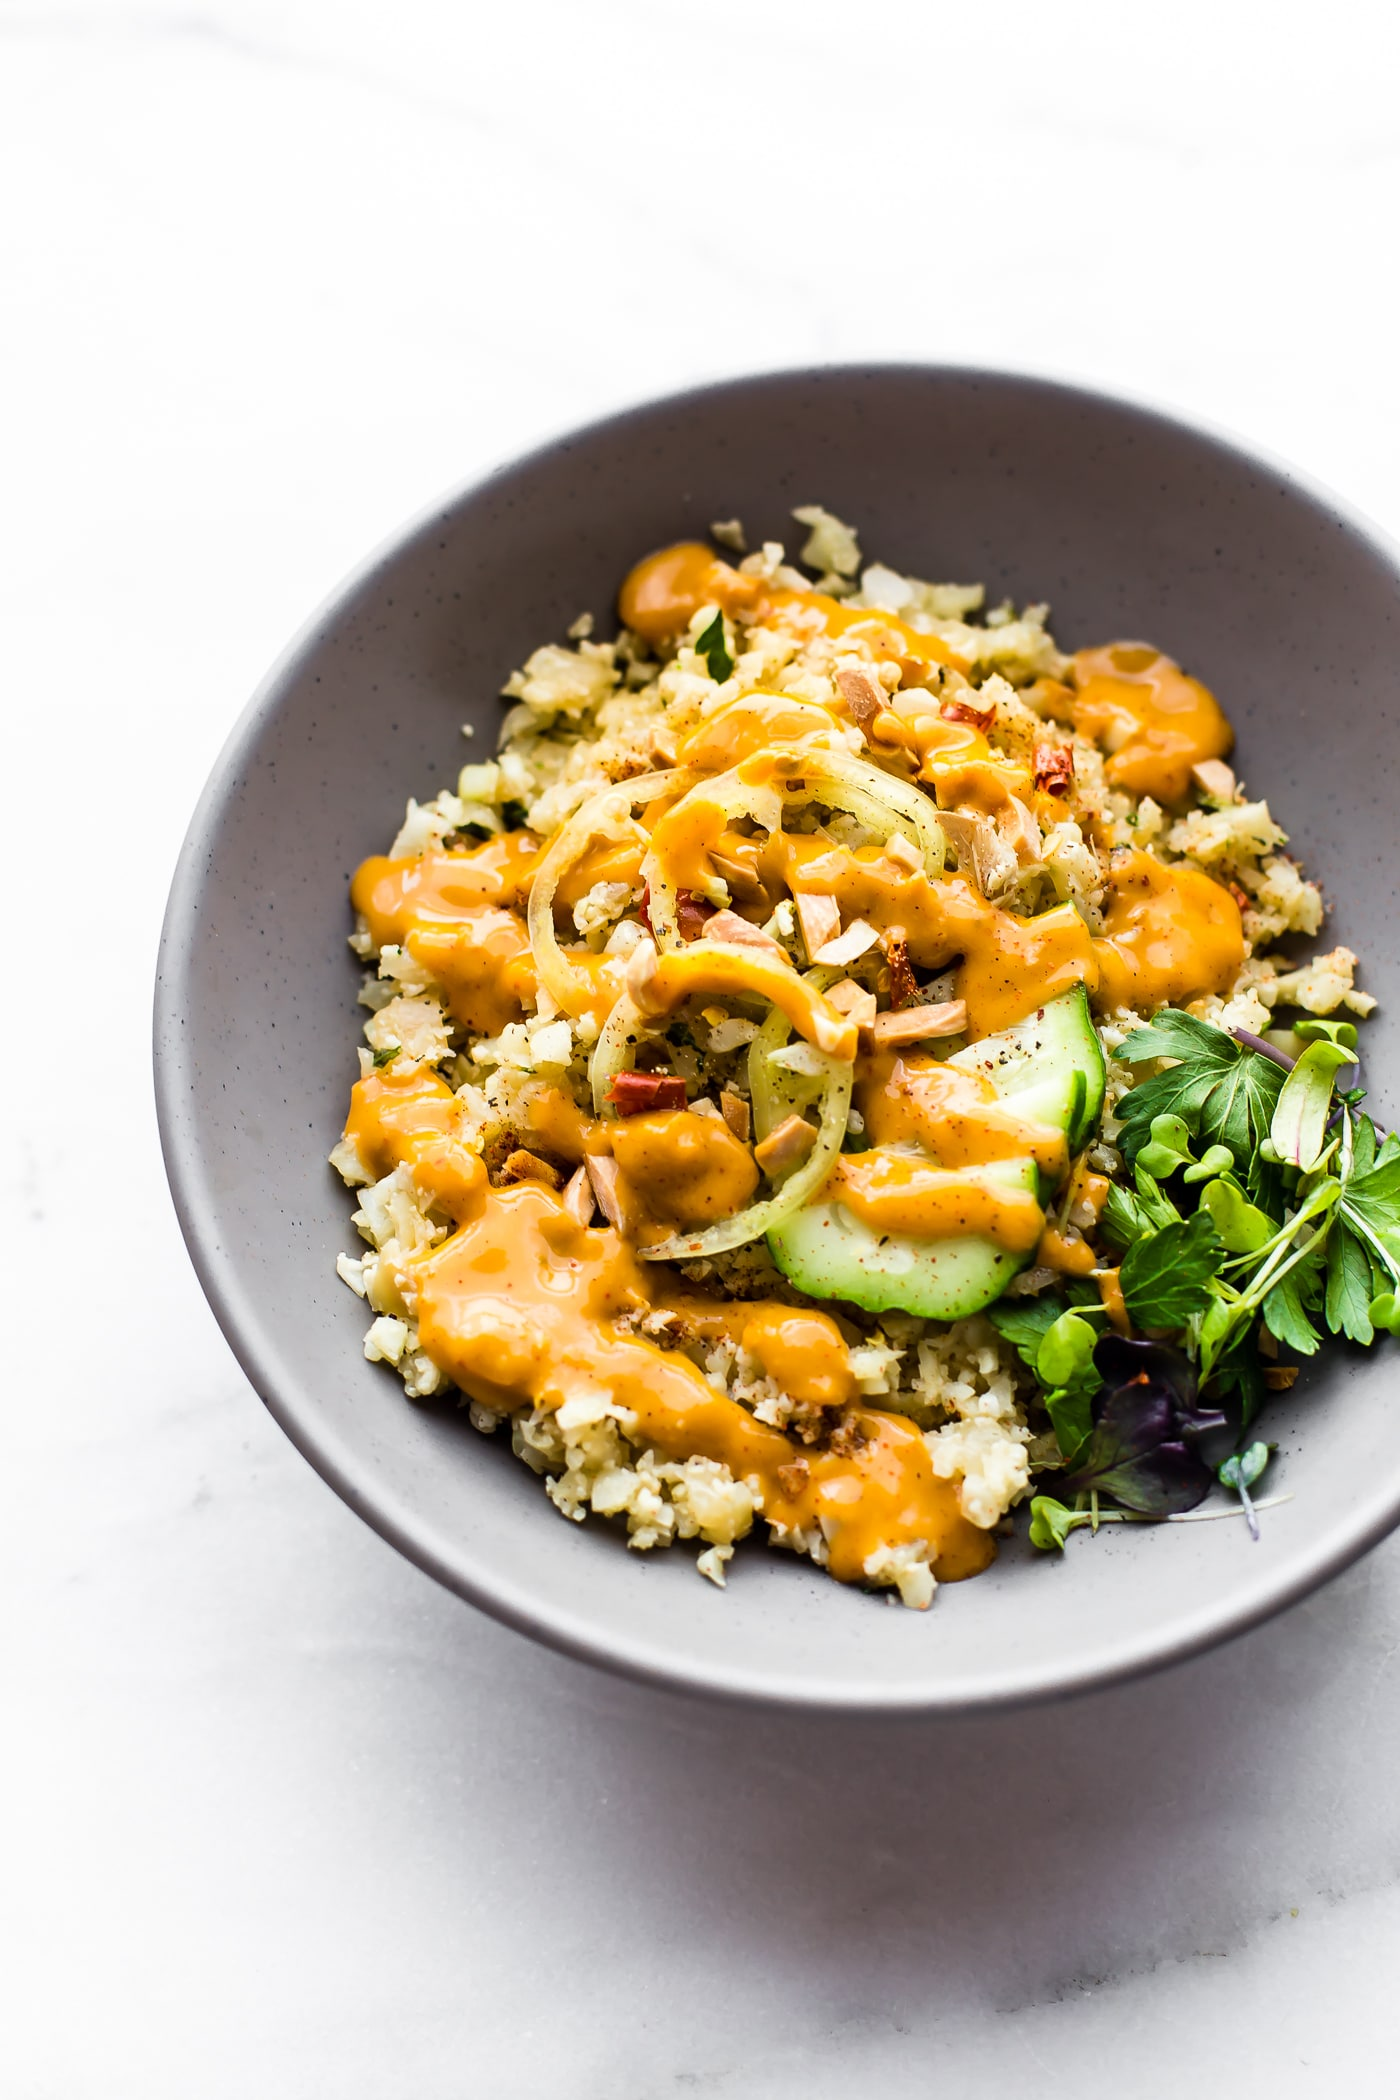 "Chili Garlic Cauliflower ""Risotto"" Bowls are a quick Paleo dish for a healthy comfort food craving! A vegan vegetable risotto recipe with a spicy sauce!"